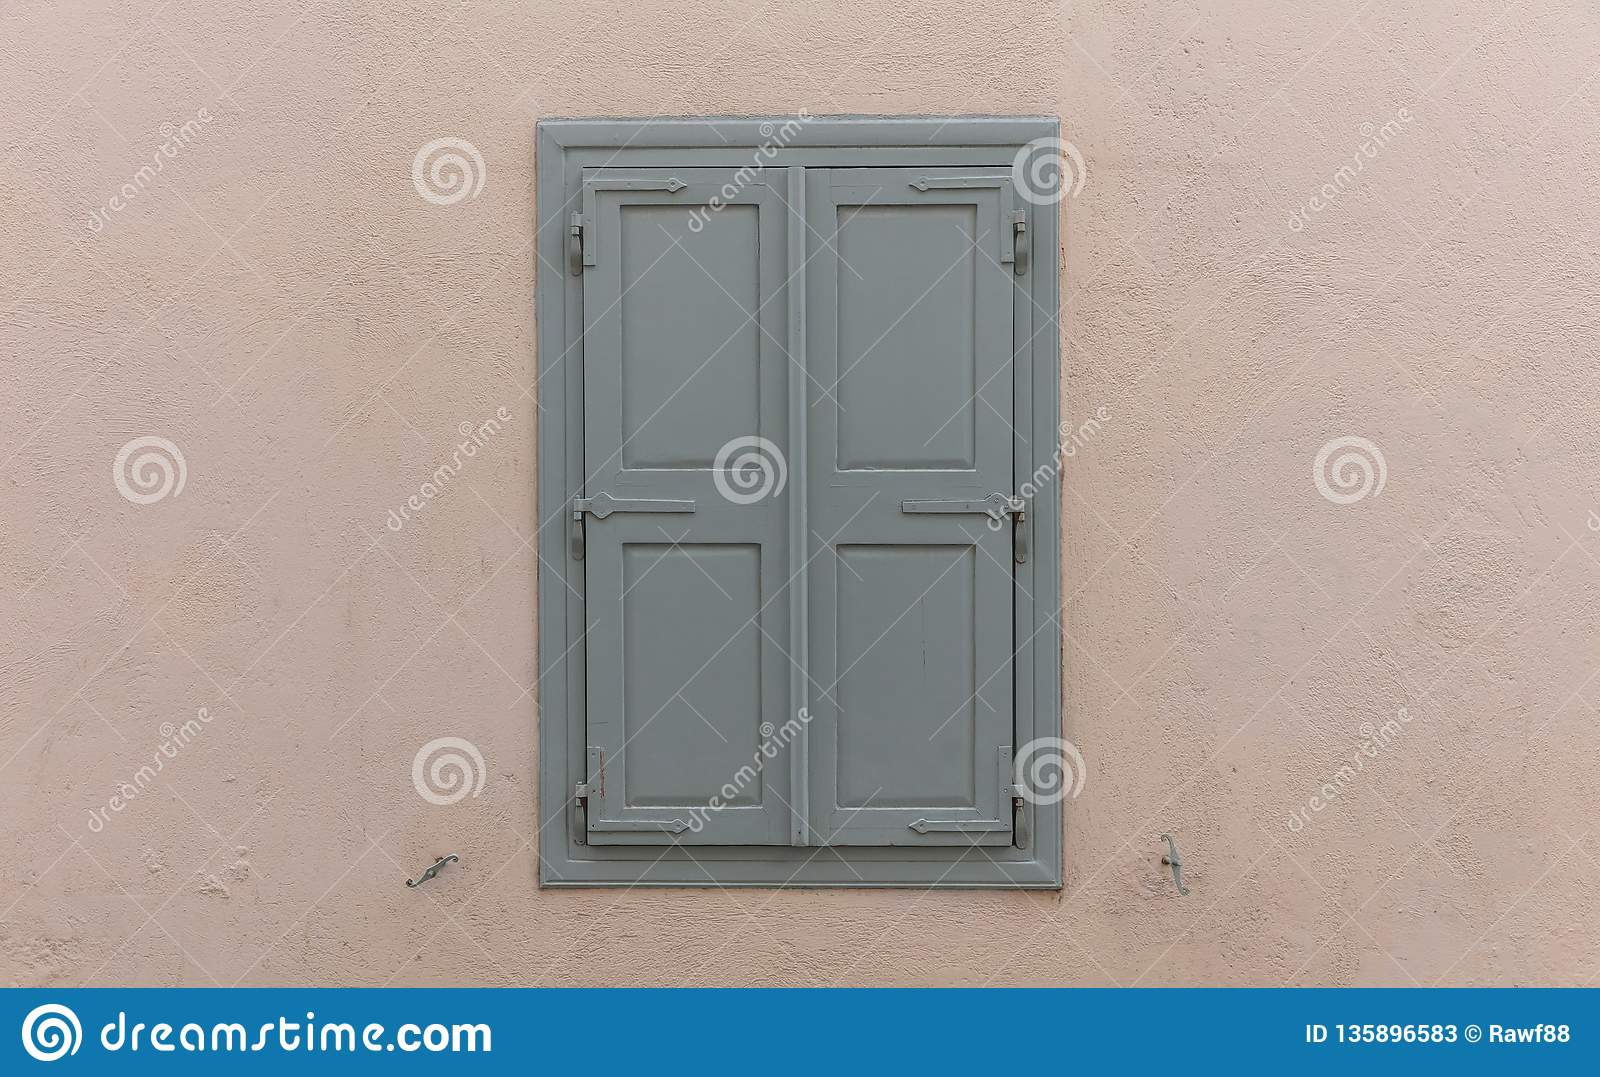 Wooden Window With Grey Shutters Closed On Painted Wall